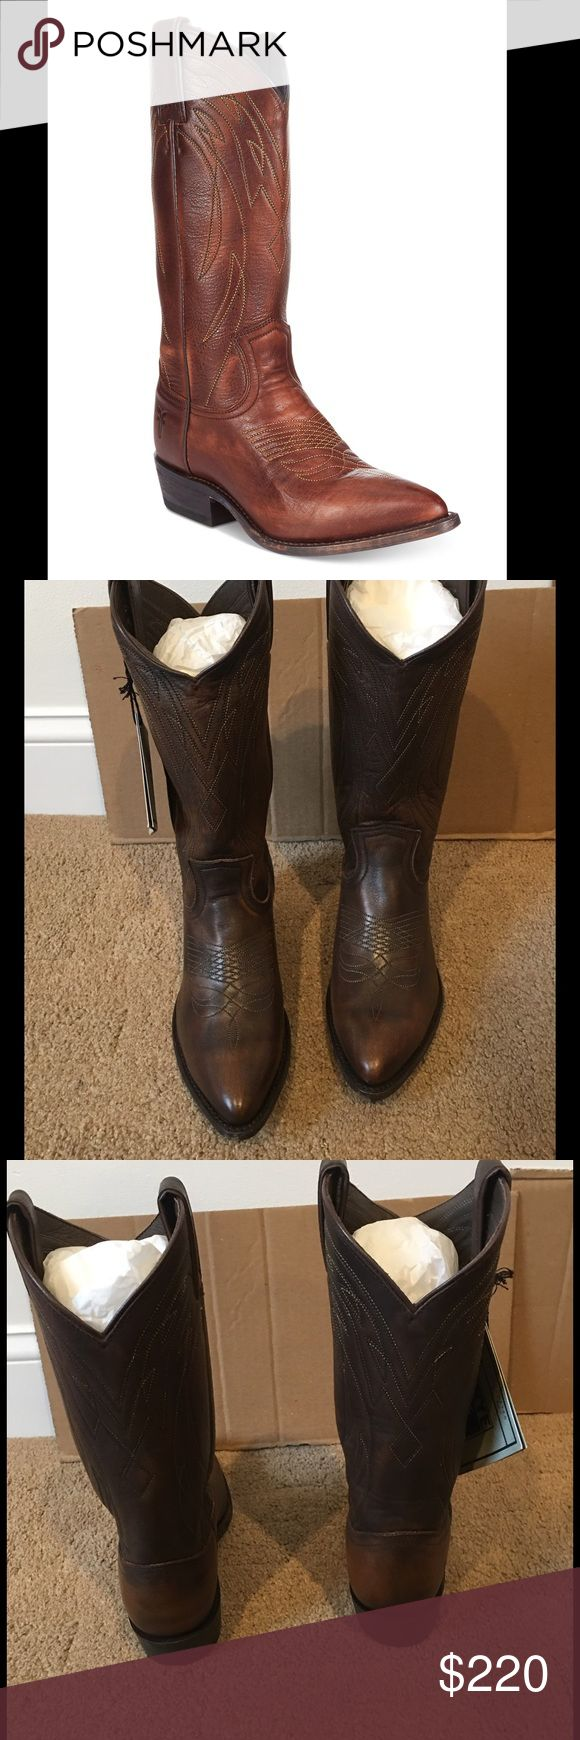 """🎉HP🎉FRYE BOOTS🎉 Western style boots features rich leather, tonal embroidery and pull on styling with a pointed closed-toe mid- shaft pull-on. 1-1/2"""" block heel. Color Dark Brown Frye Shoes Heeled Boots"""